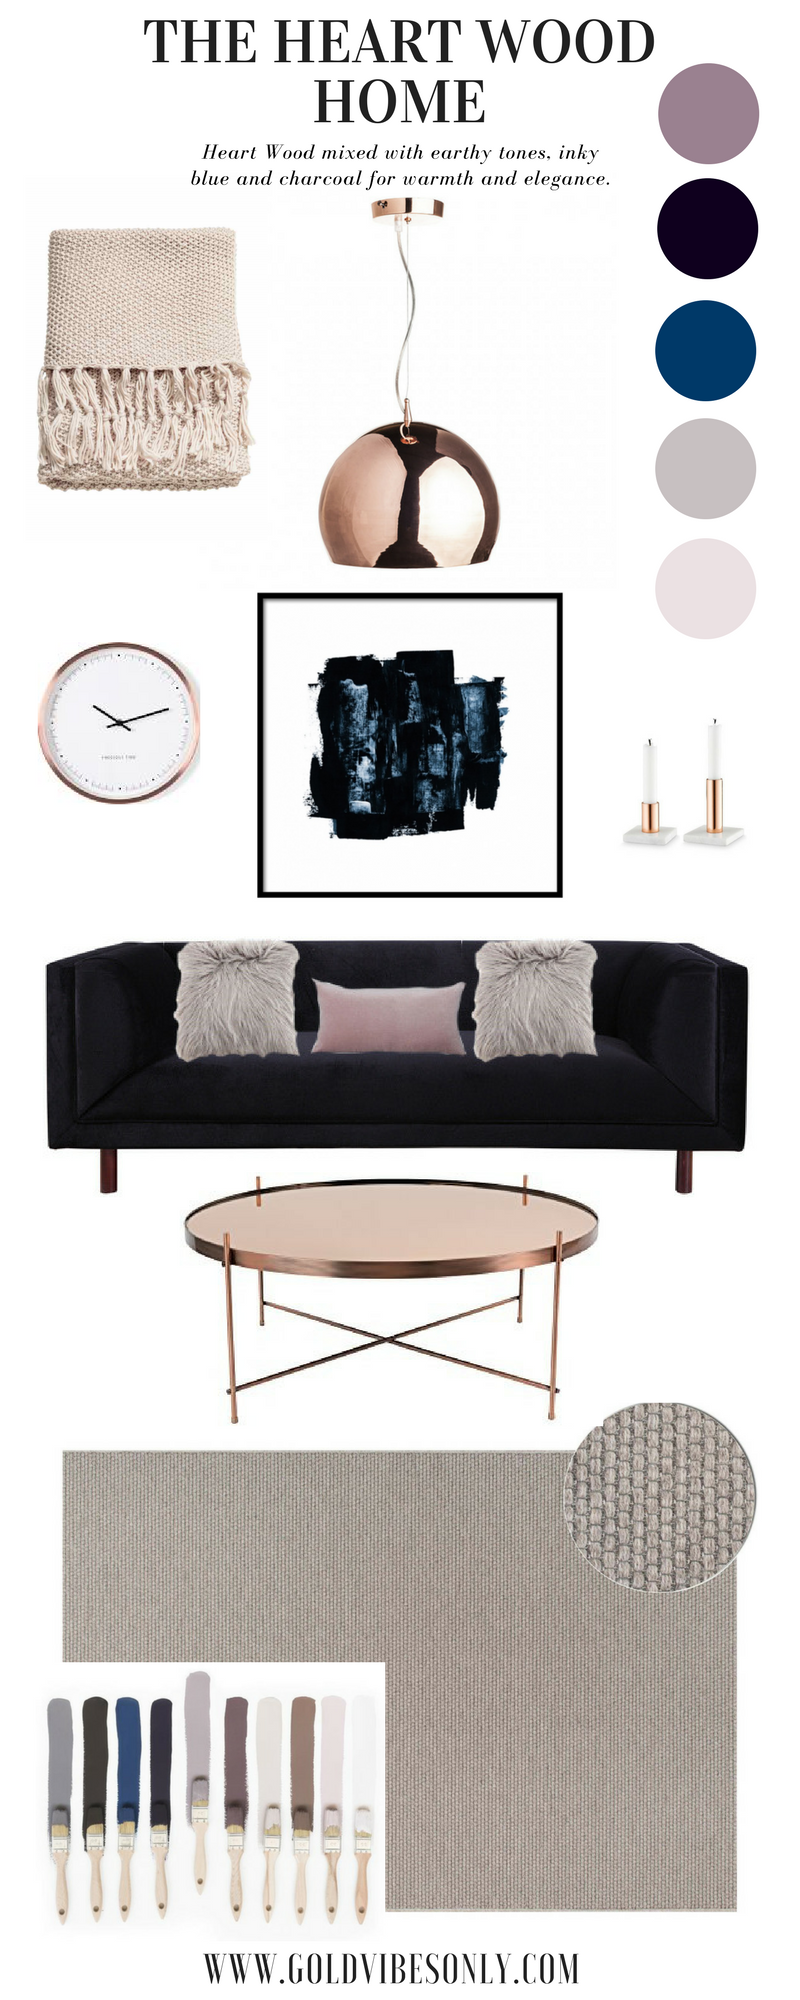 Dulux Colour of the Year Heart Wood interior home décor inspiration colour palettes The Heart Wood Home rug copper coffee table black navy sofa tom Dixon copper light